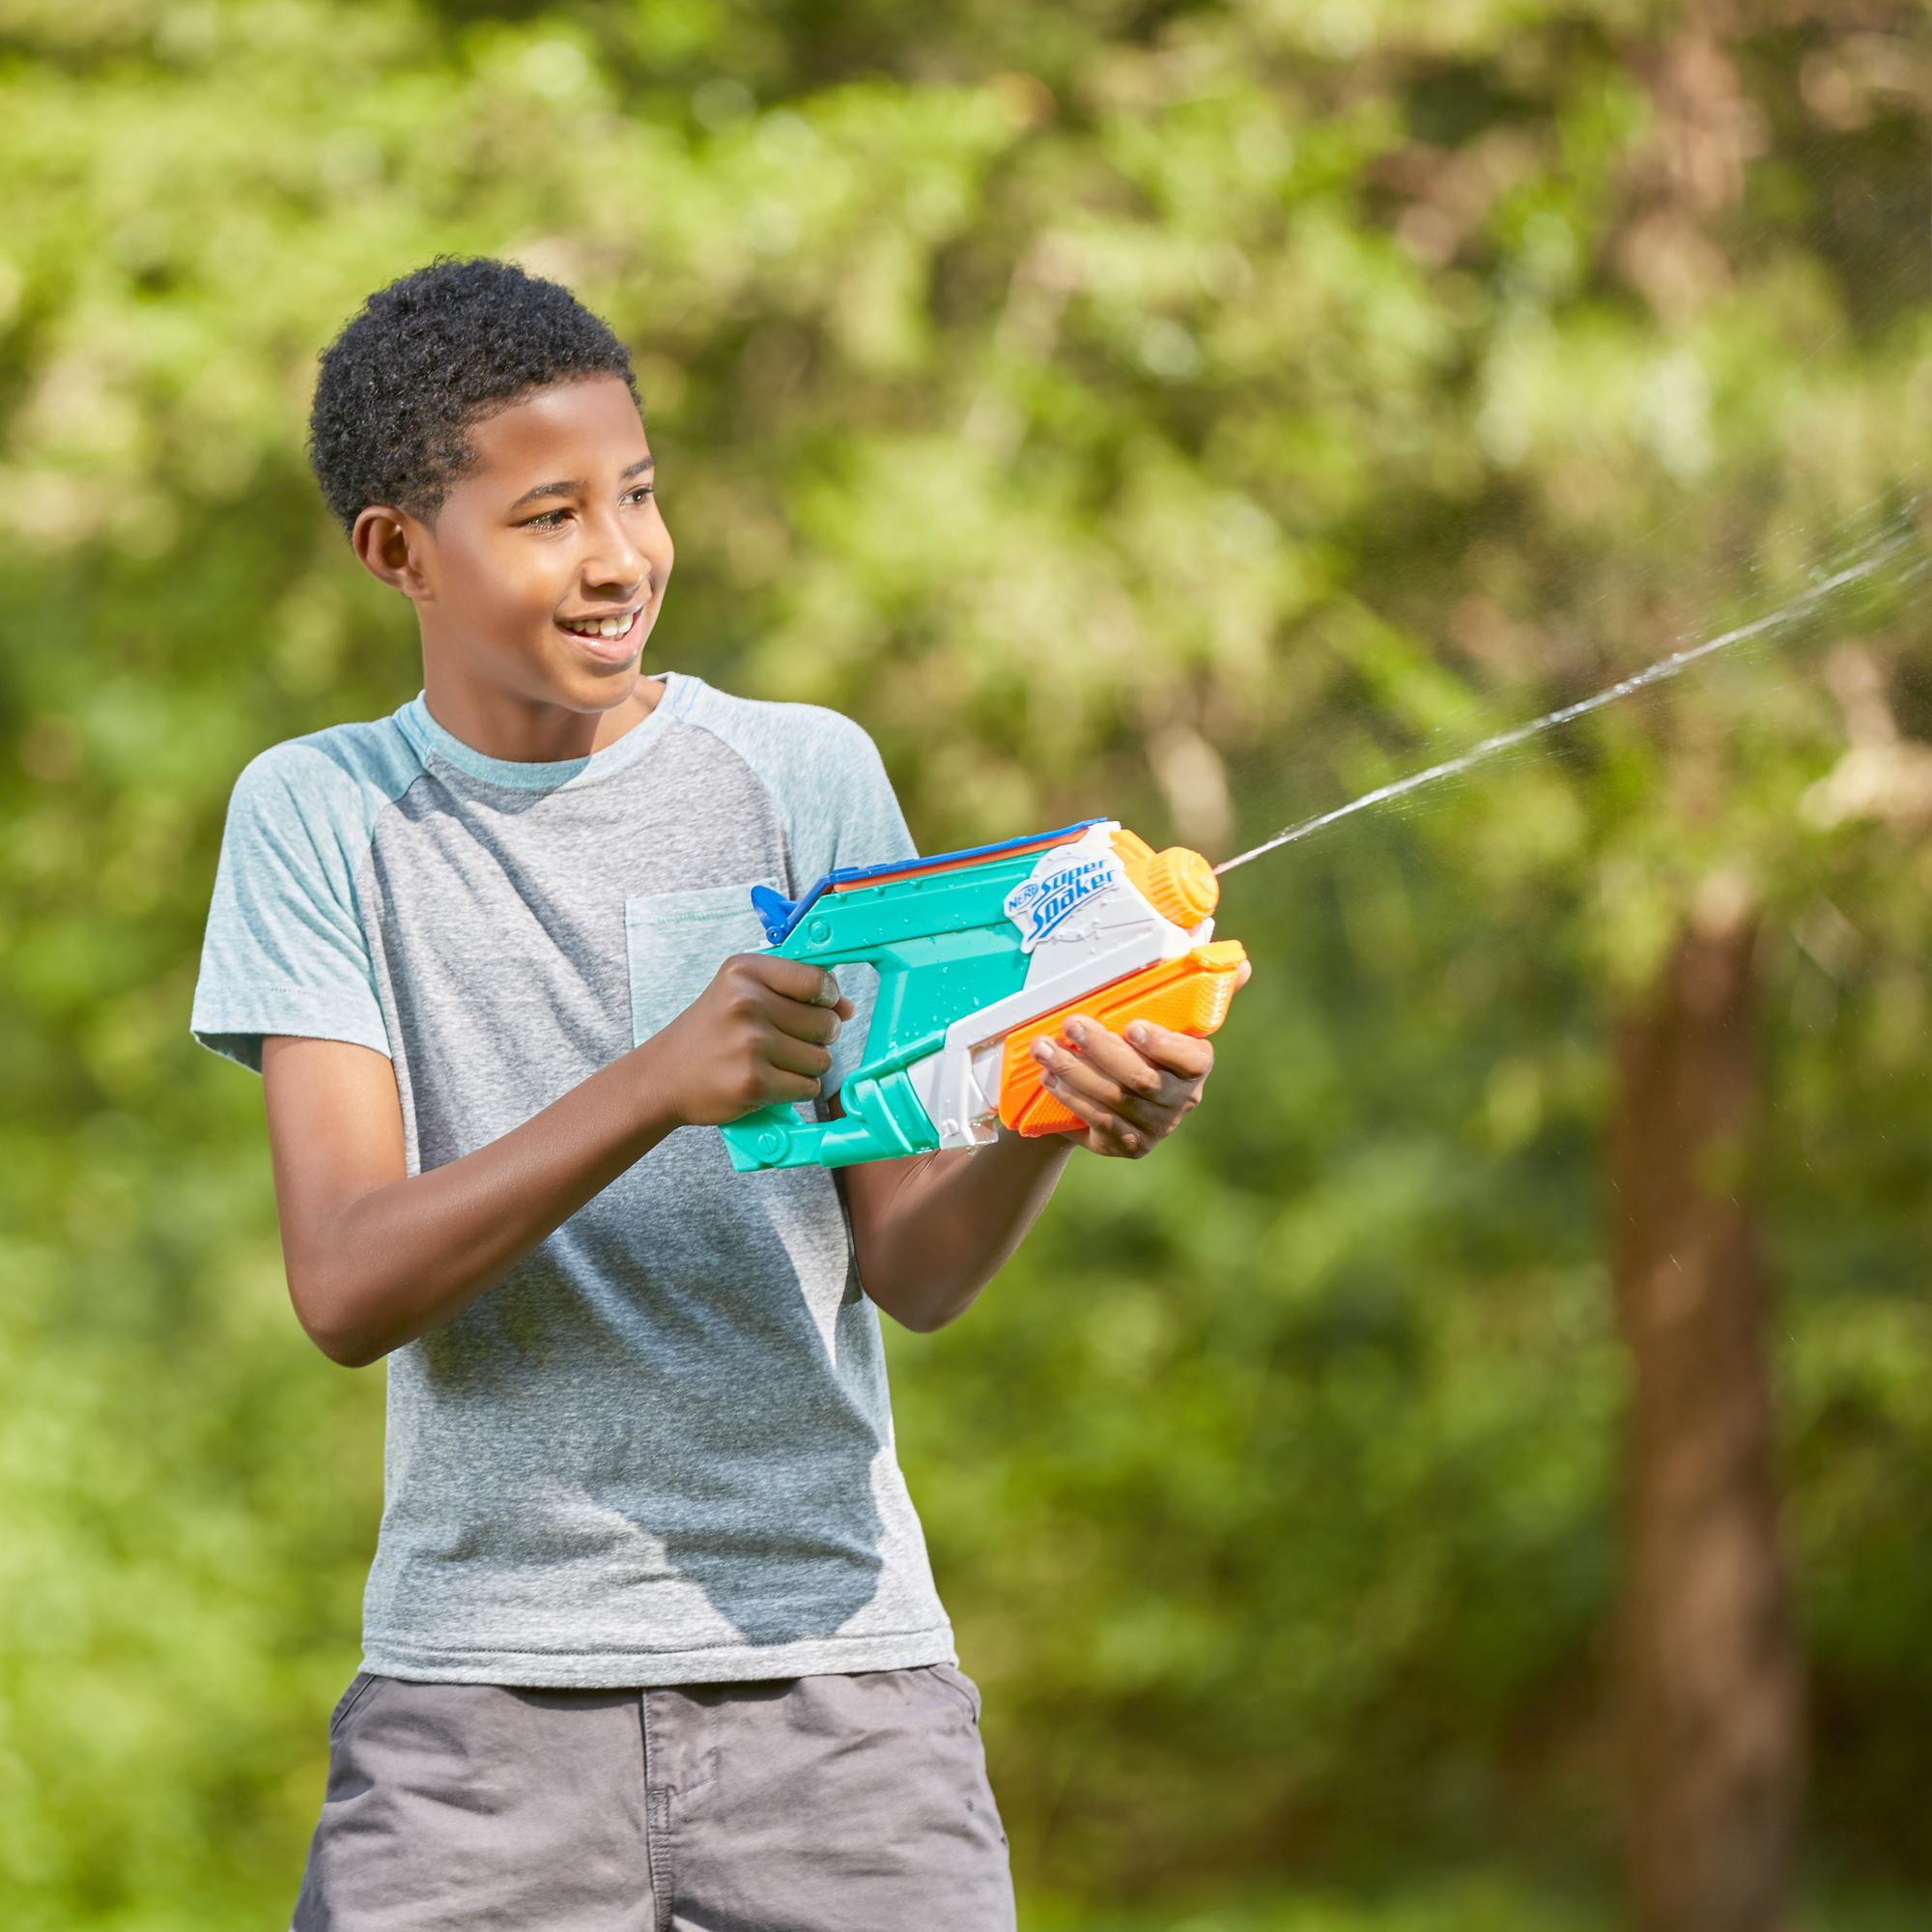 Nerf Super Soaker - Foudroyeur SplashMouth